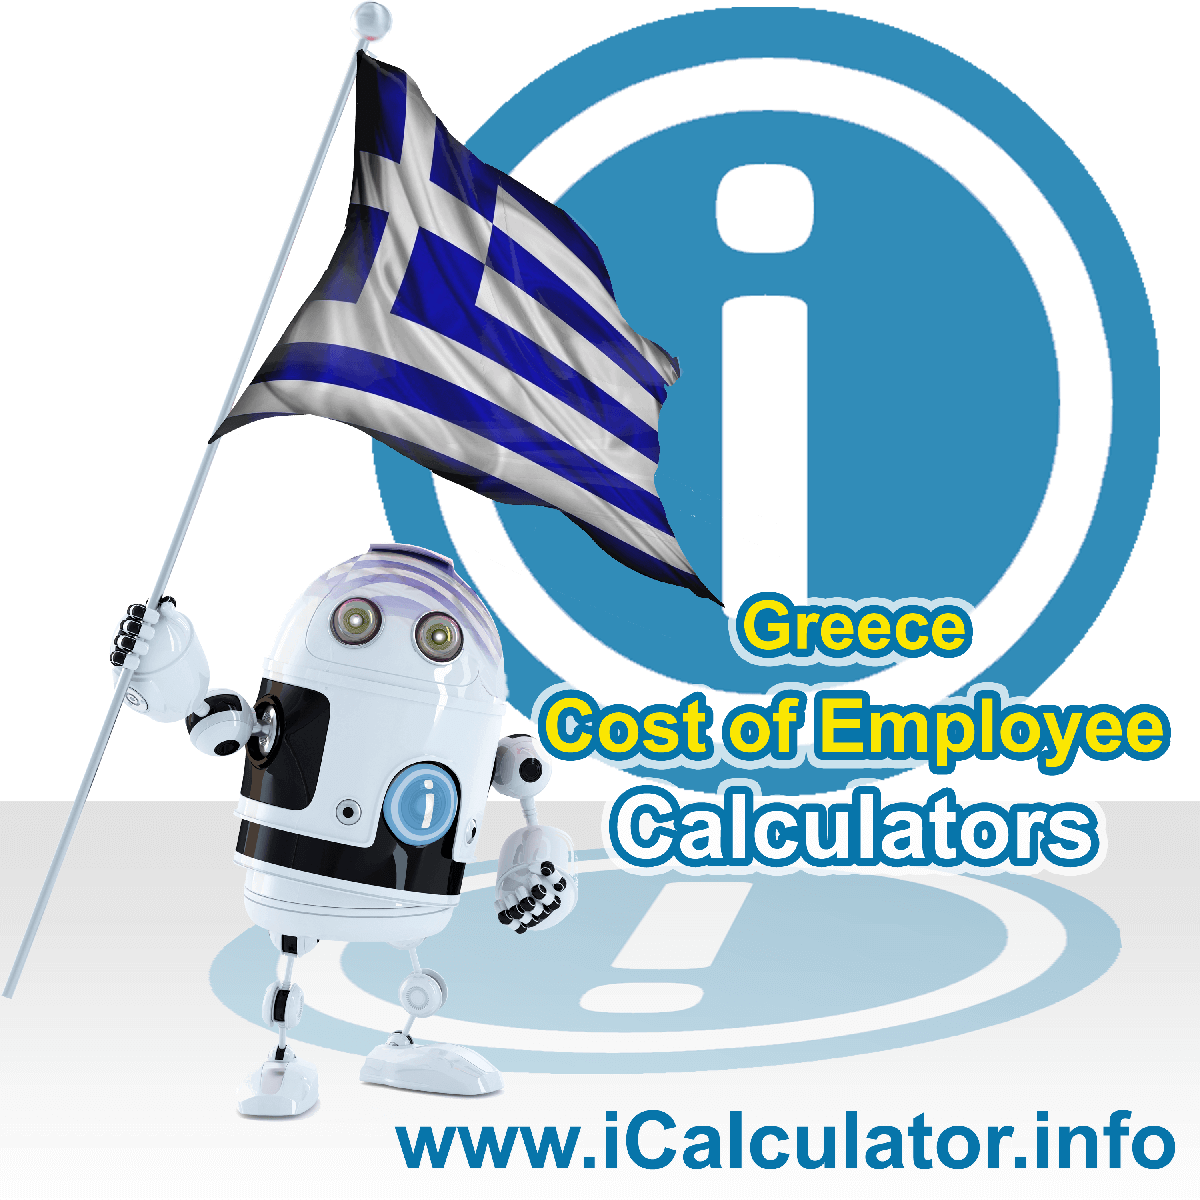 Greece Payroll Calculator. This image shows a new employer in Greece looking at payroll and human resource services in Greece as they want to hire an employee in Greece but are not sure of the employment costs. So, they make use of the Greece payroll calculator to understand their employment cost in Greece in 2019